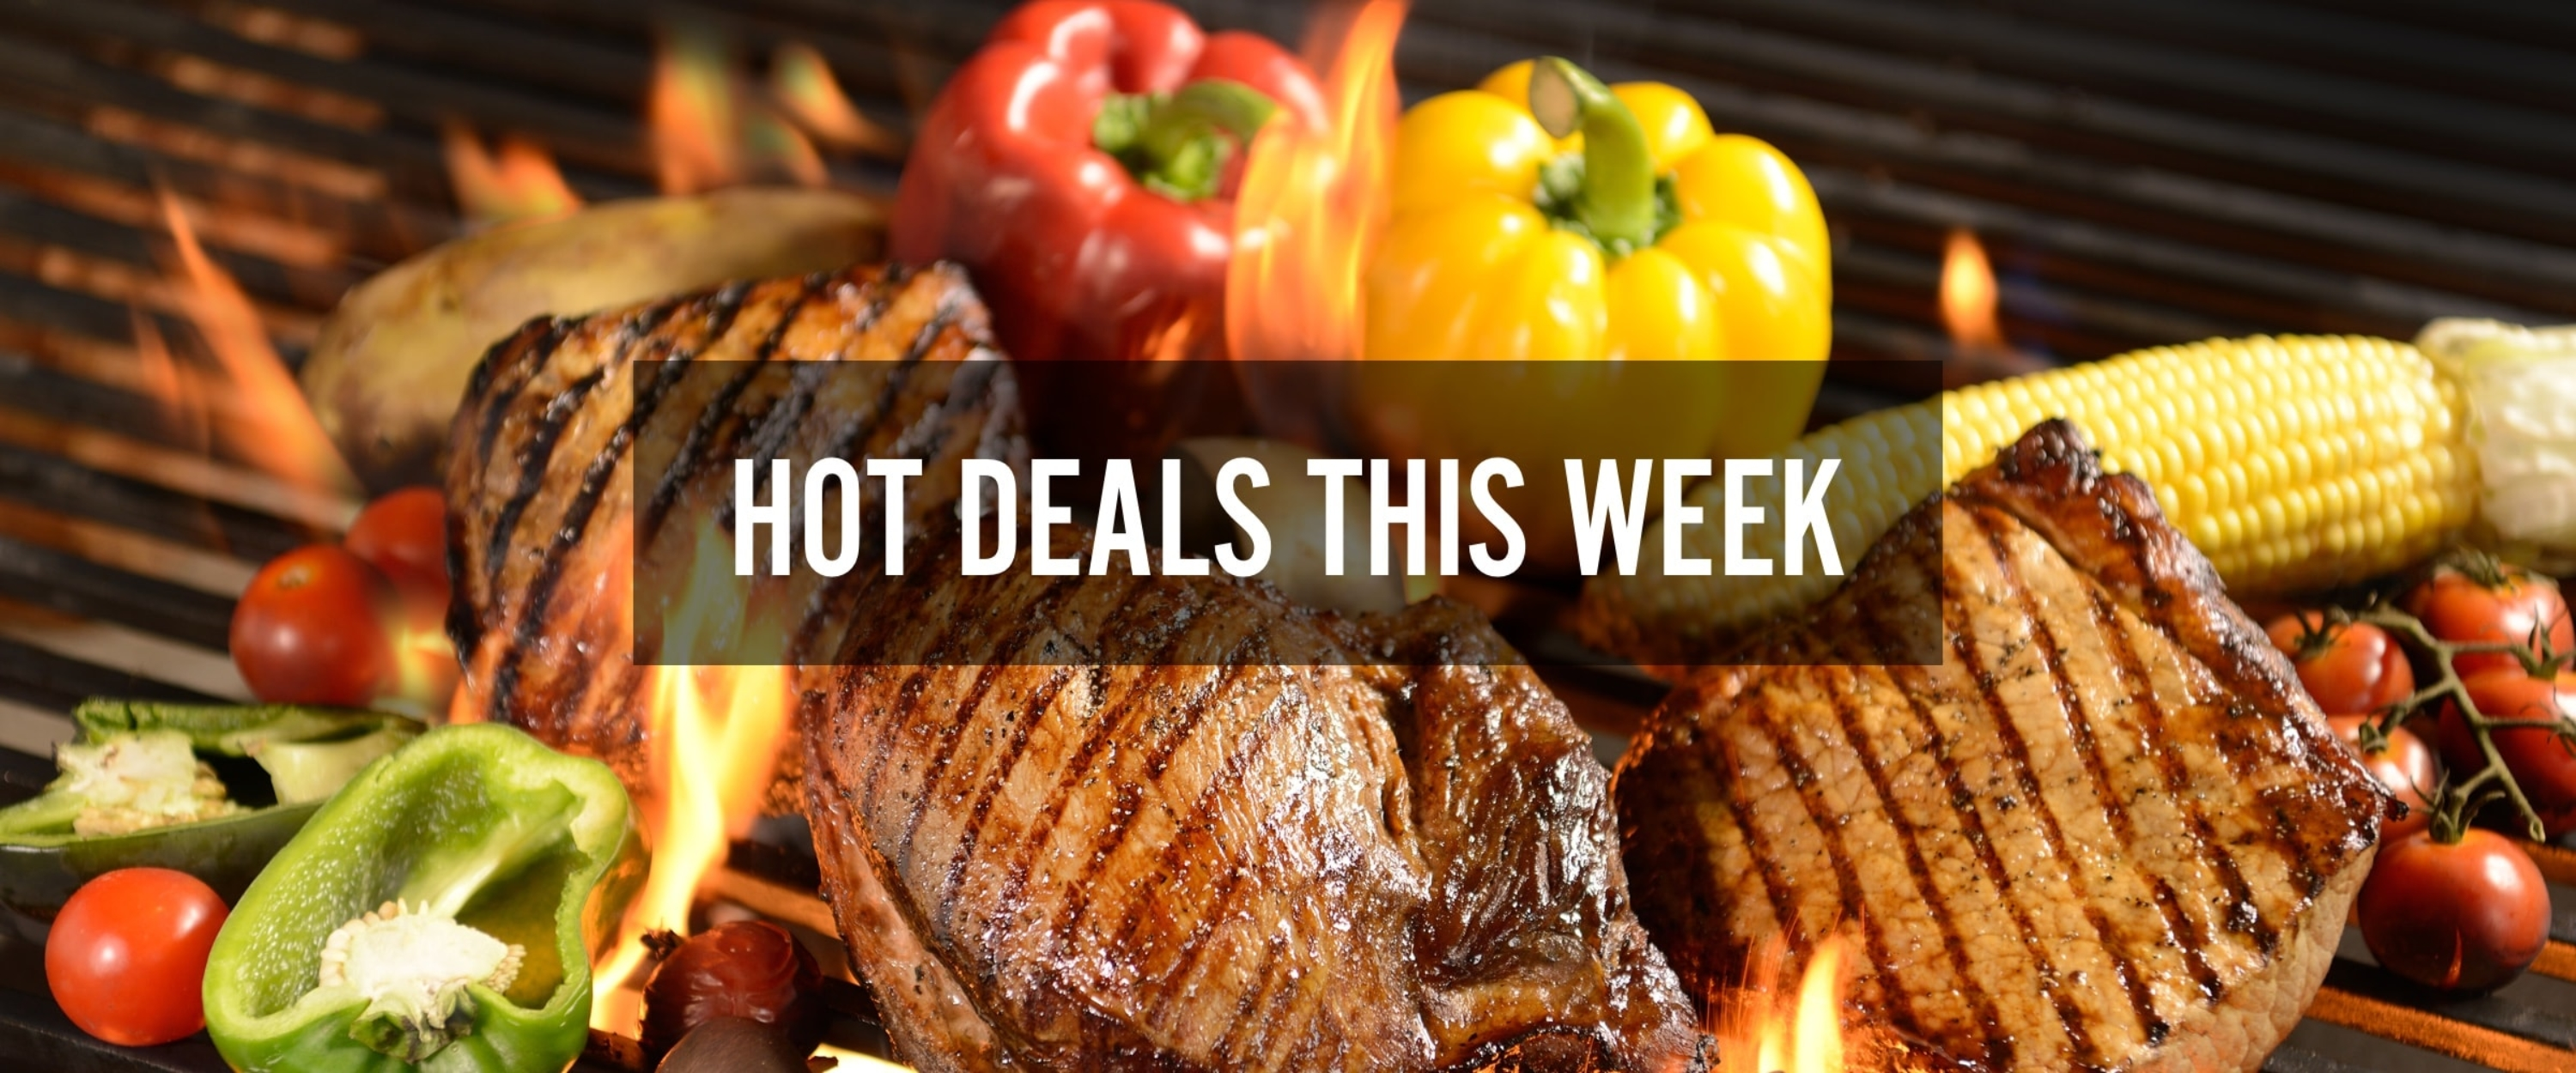 Hot Deals This Week